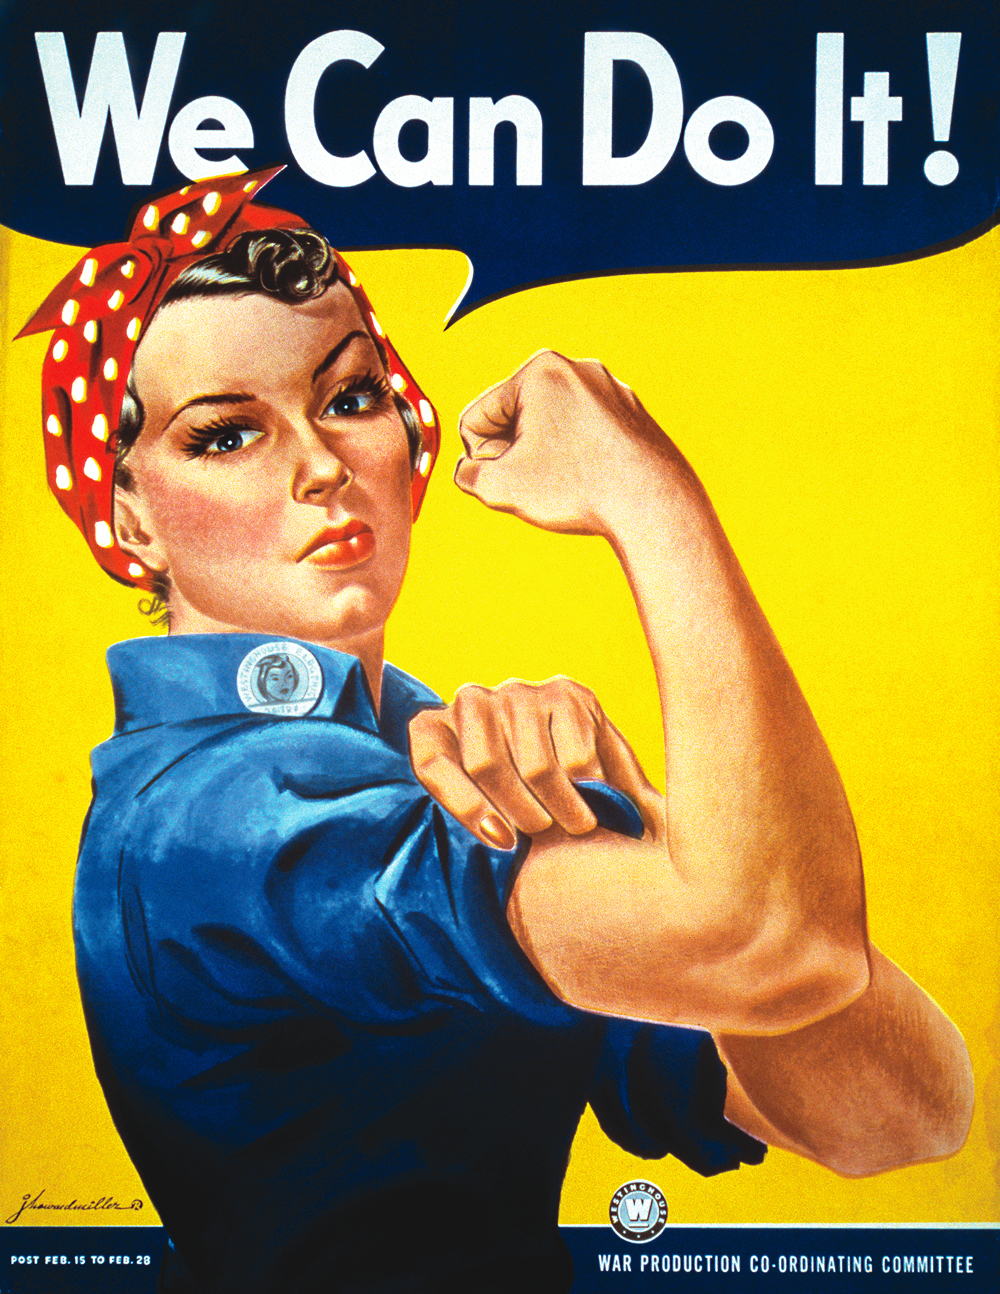 Rosie the Riveter was an iconic image based on reality that encouraged women to take on traditional male careers during WW2 - What is Rosie's equivalent for today?